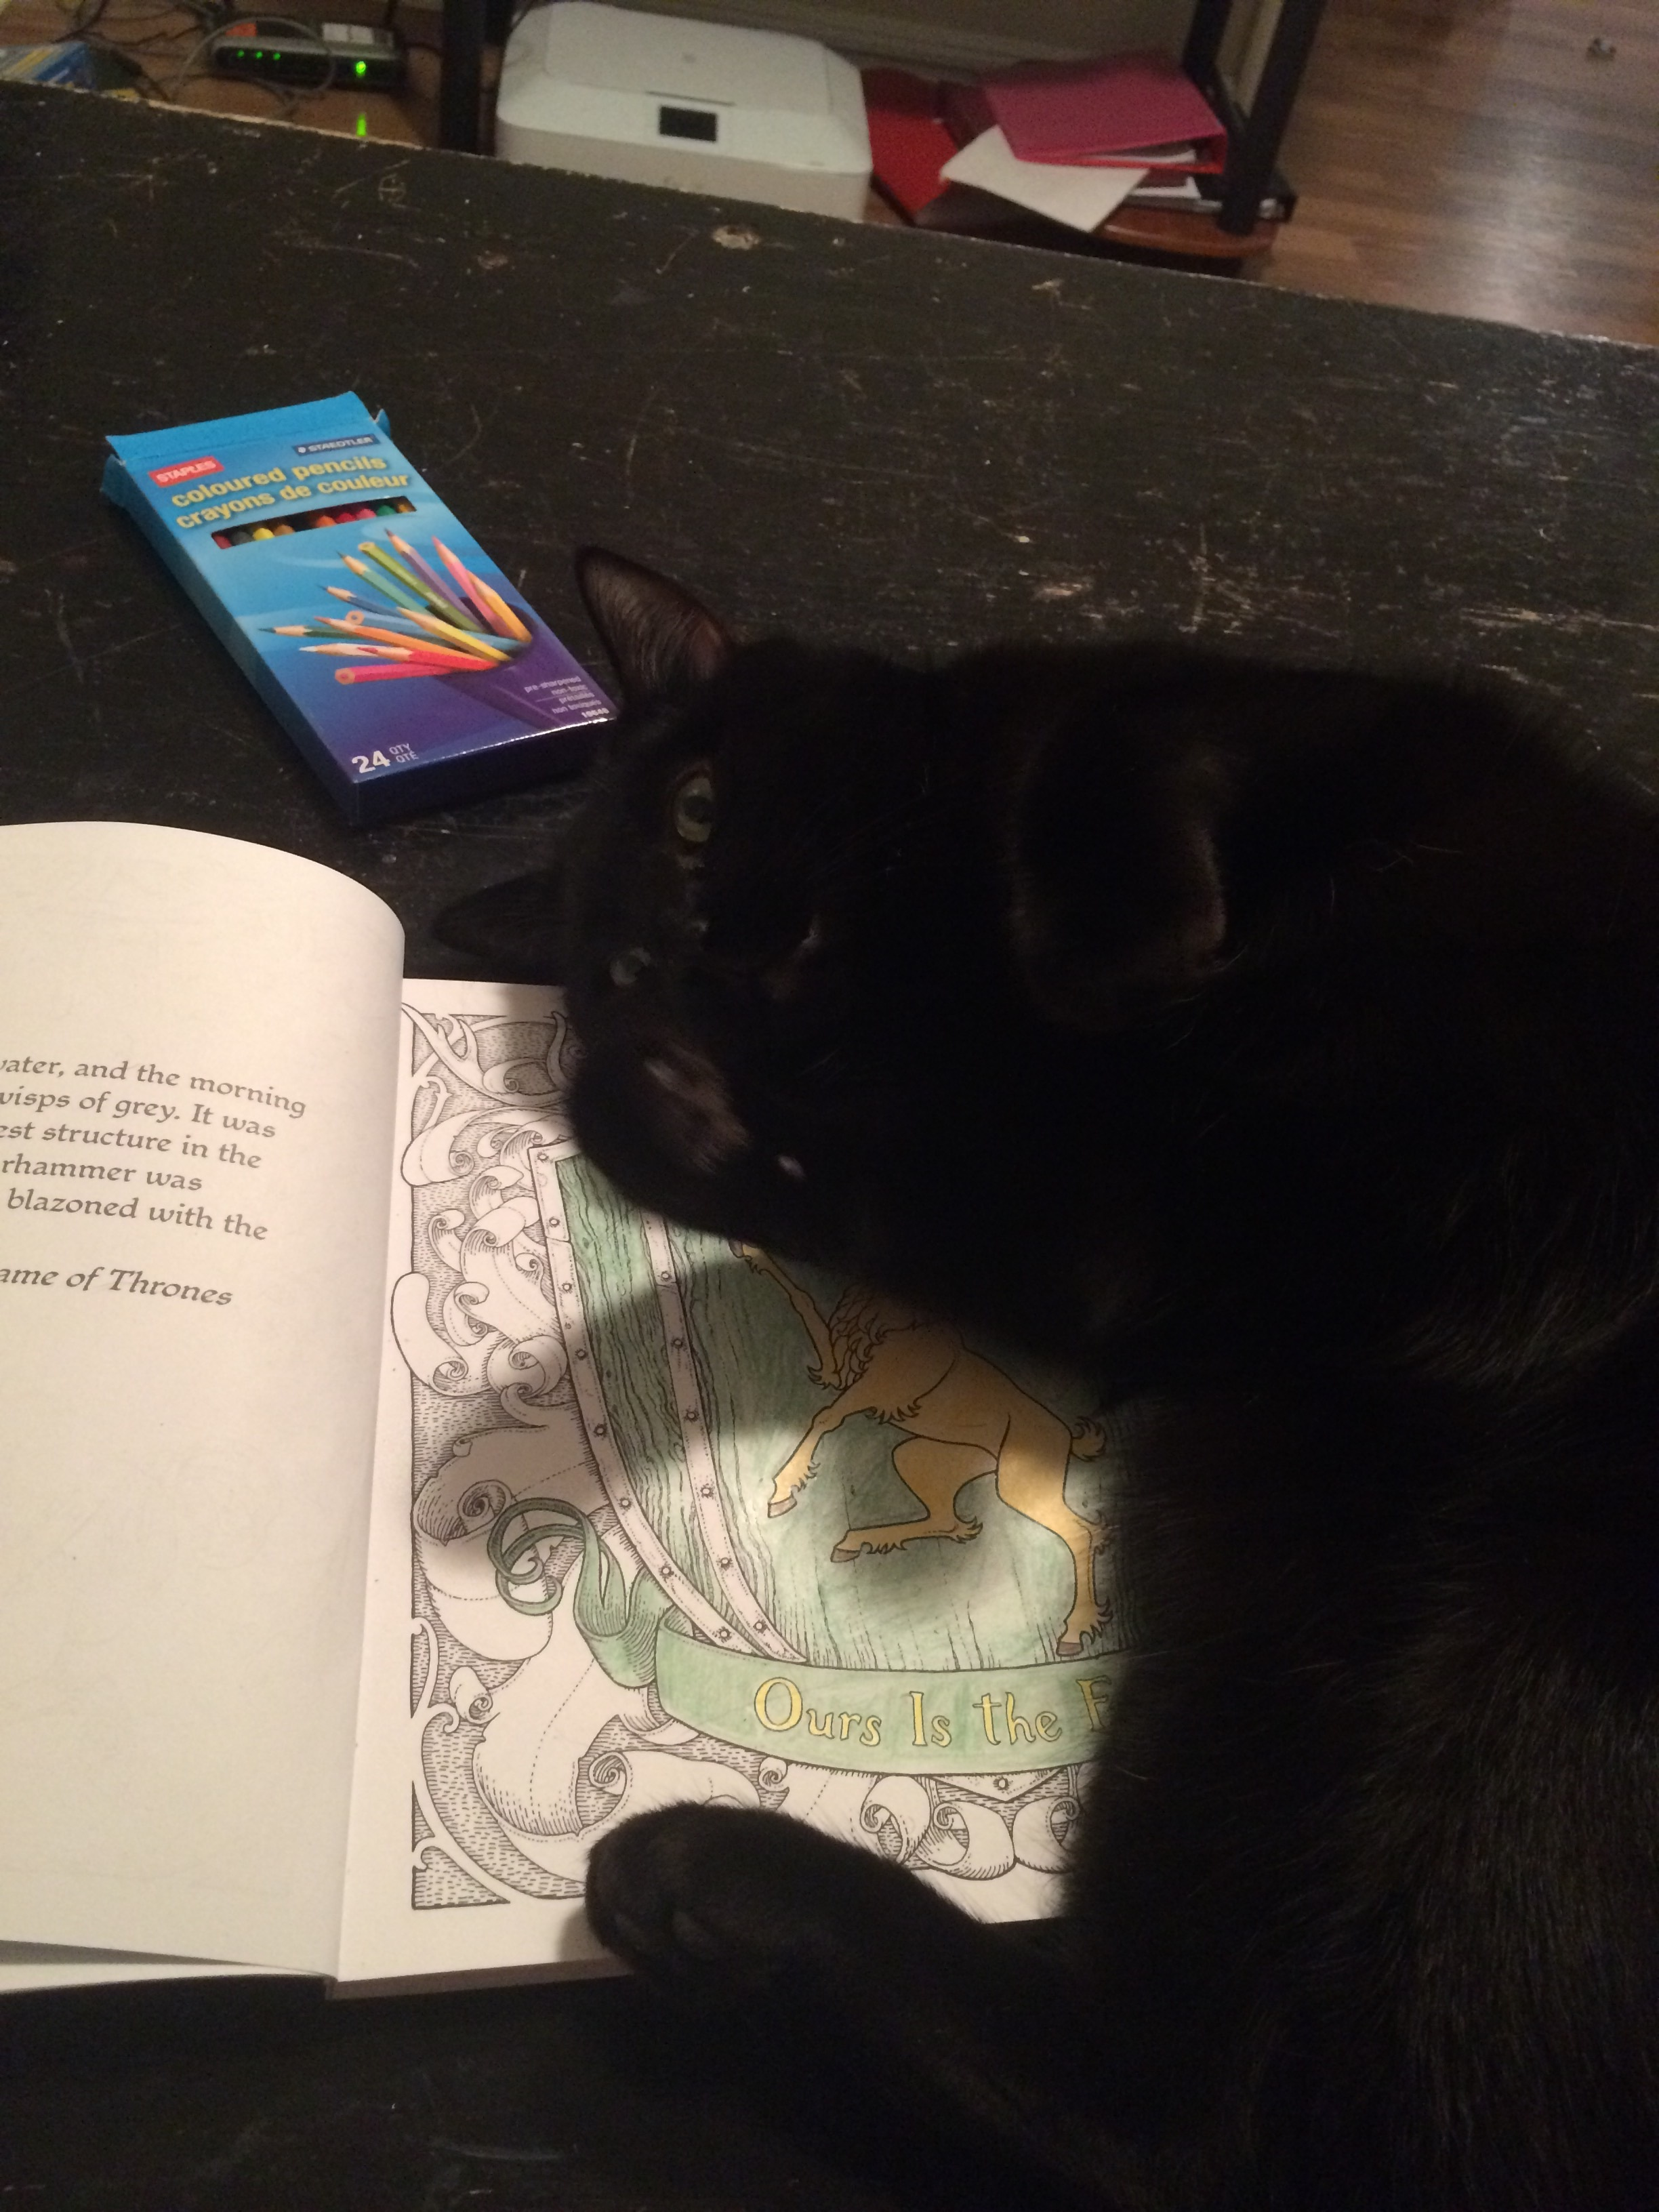 He determined that my Game of Thrones colouring book needed to go away.